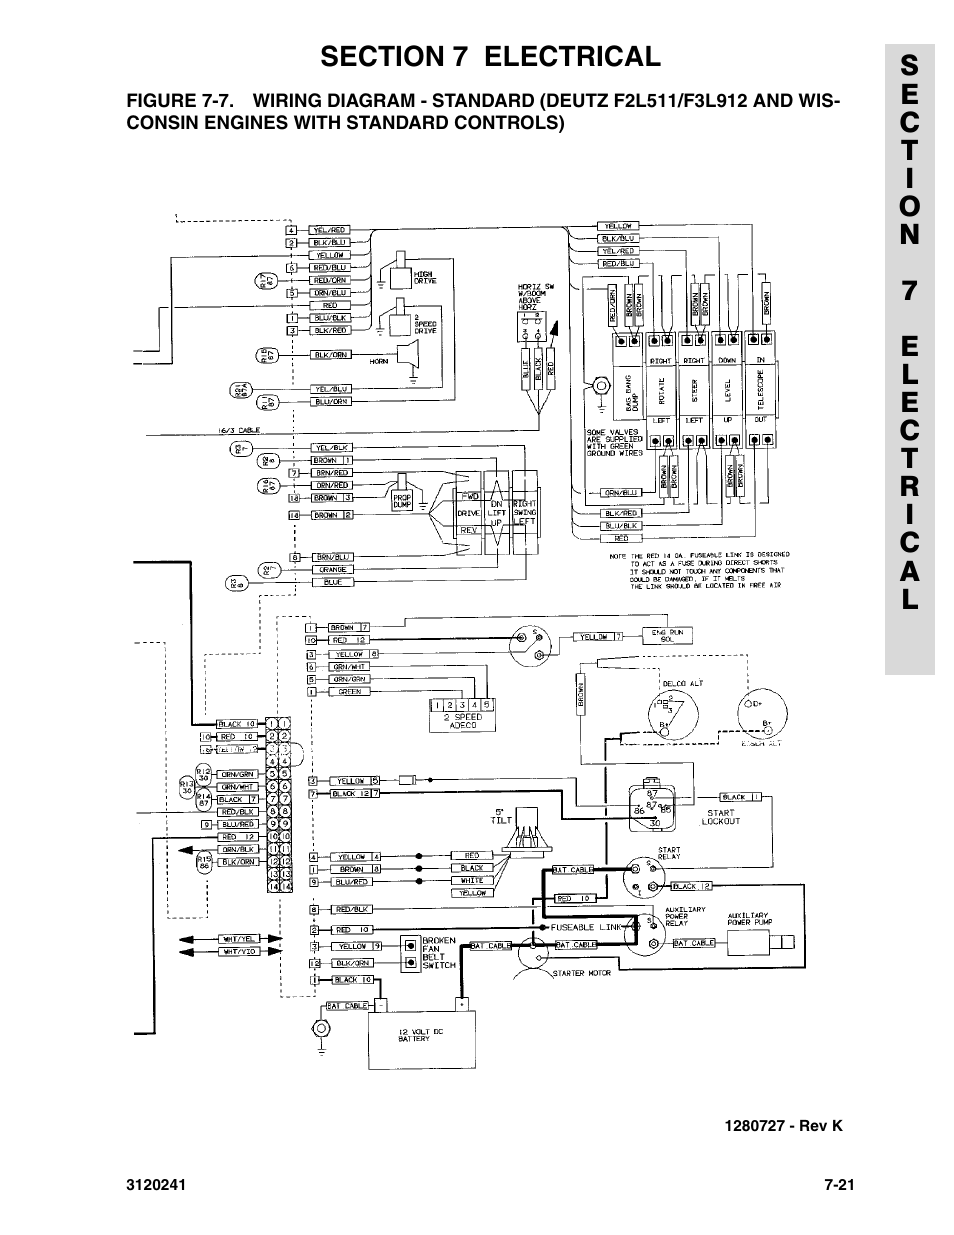 wiring diagram jlg wiring diagram and schematic collection lull forklift wire diagram pictures